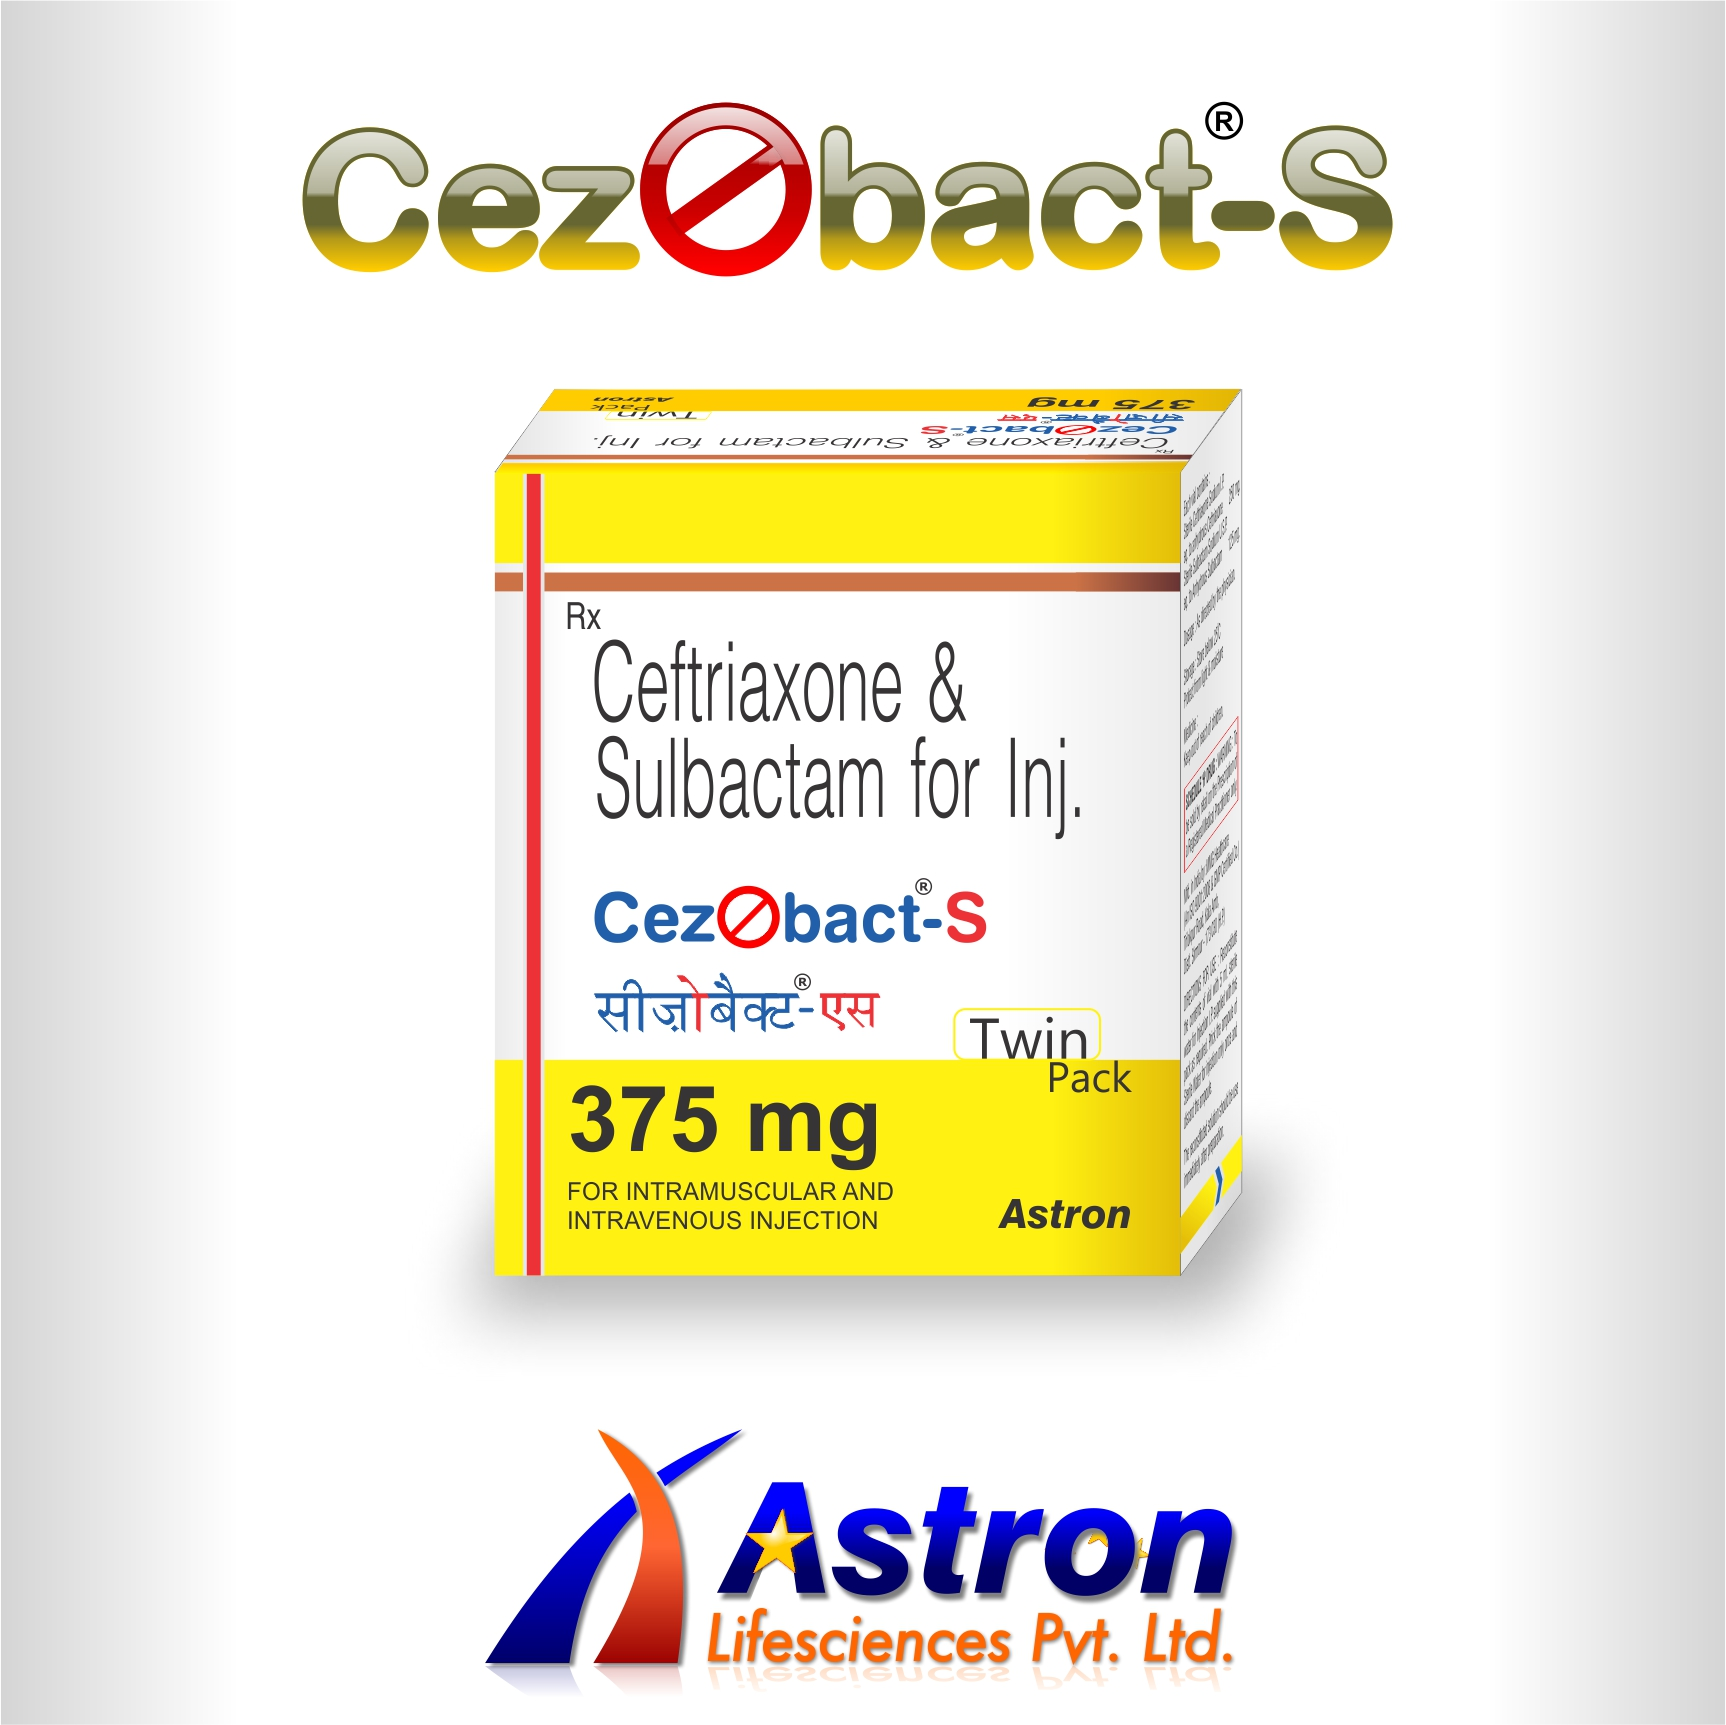 Duchenne Muscular Dystrophy Quotes Cezobact S 375mg Astron Lifesciences